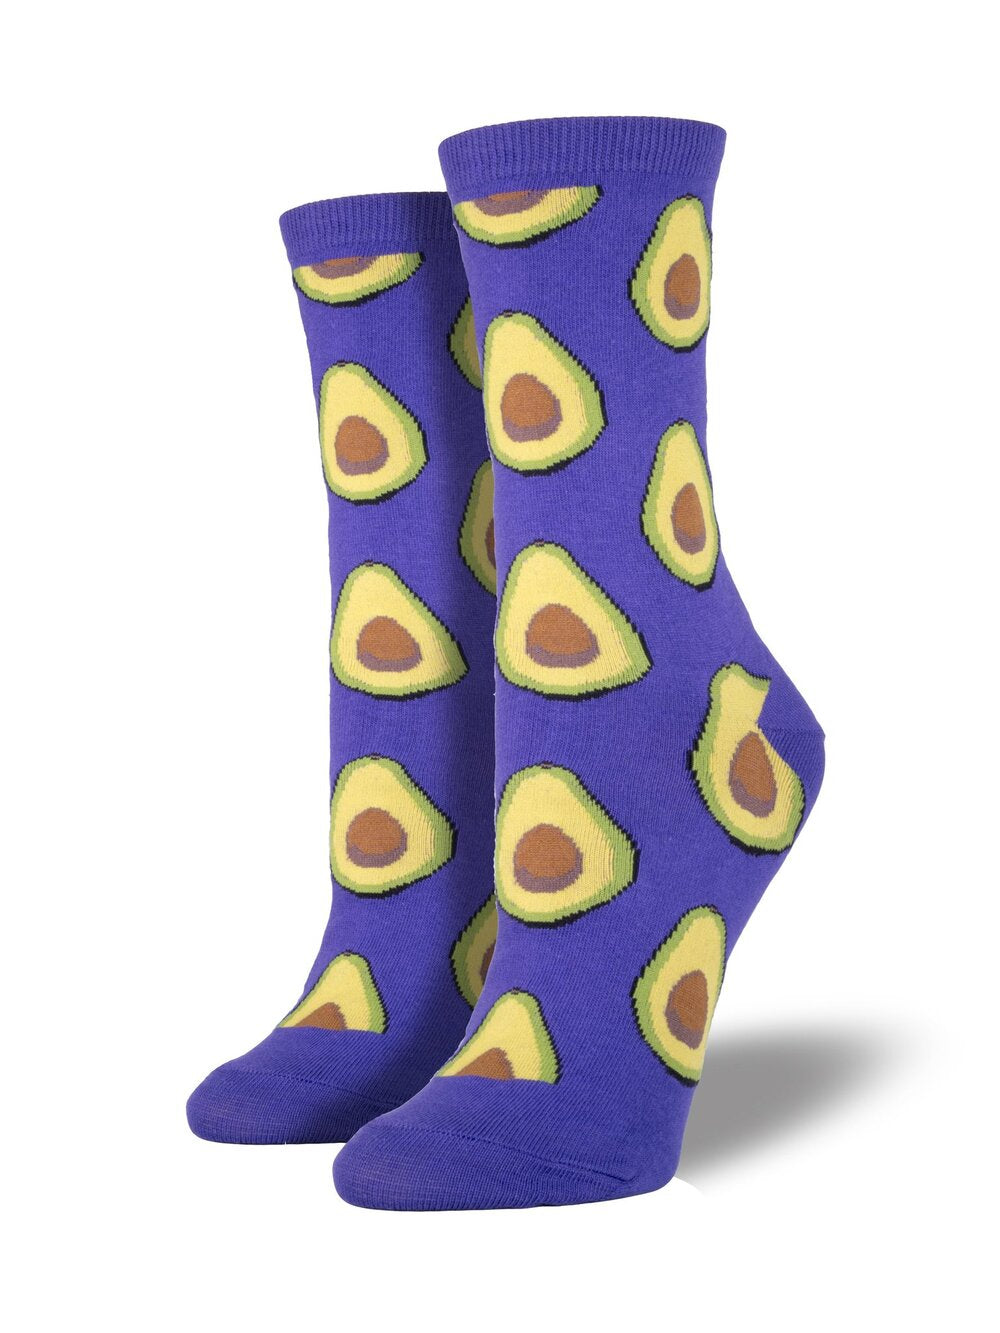 Socksmith 'Avocado' Grape Womens Socks